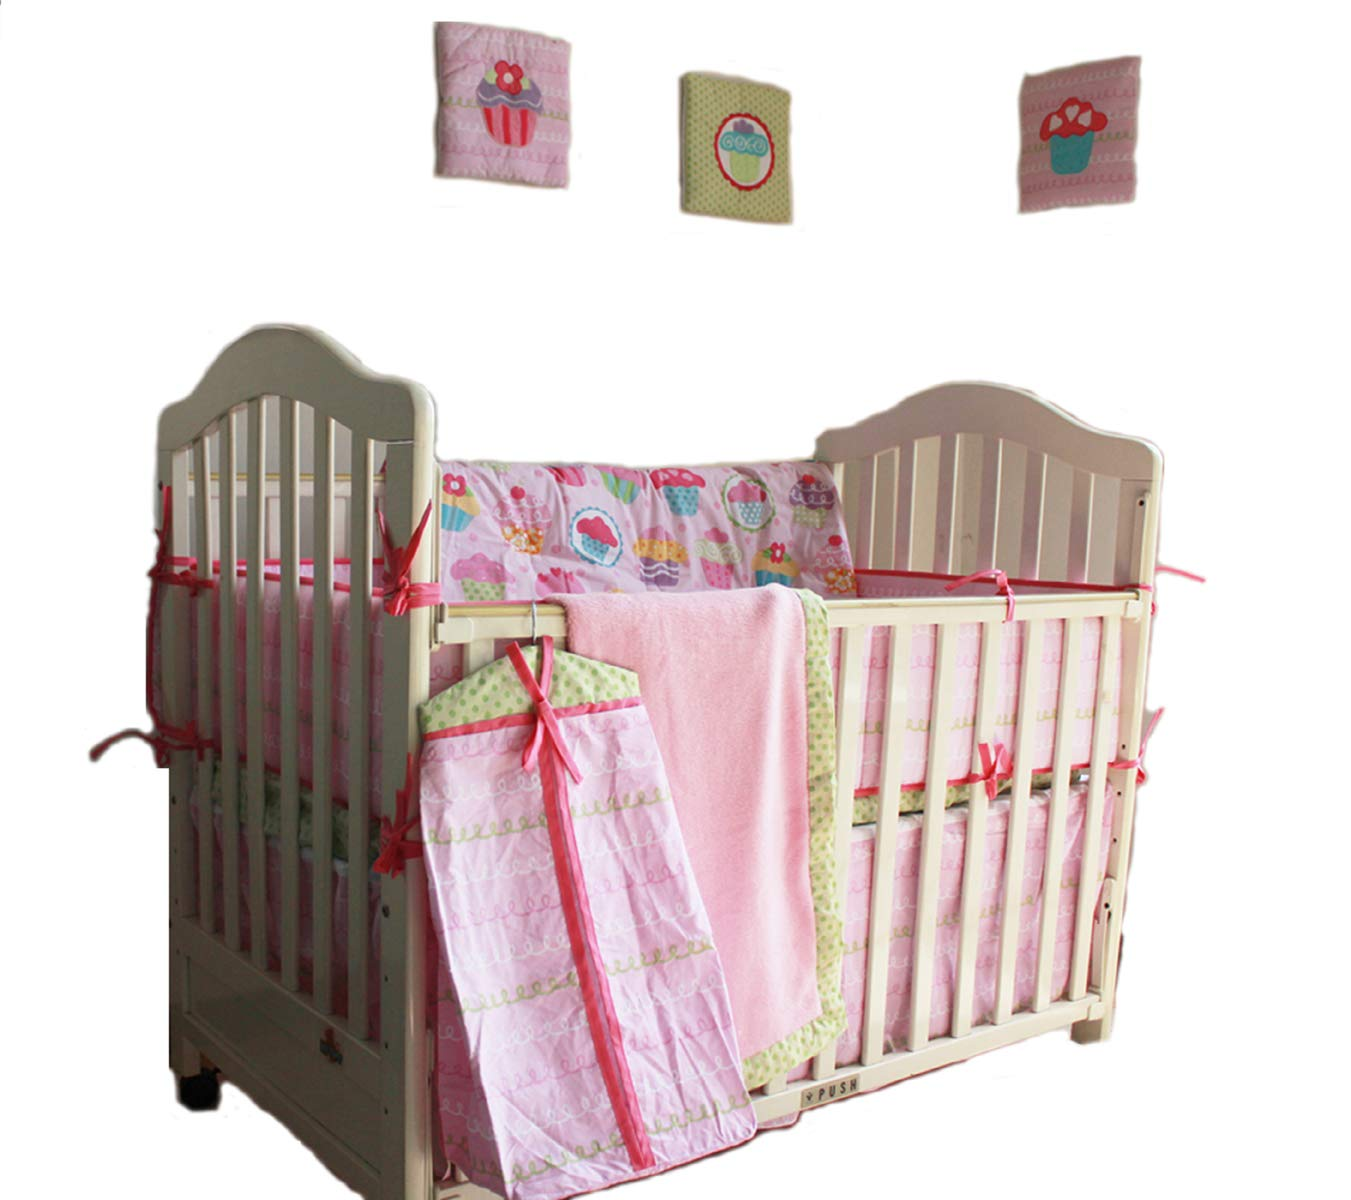 100% Cotton Nursery Crib Bedding Satz Pink Cup Cake/Cupcake Baby Bedding Satz 12 Pcs Baby Girl Satz Comforter+Bumpers+Skirt+Blanket+ 3 Wall Hangings +2 Fitted Sheet +1 Diaper Bag Baby Girl Gift Idea